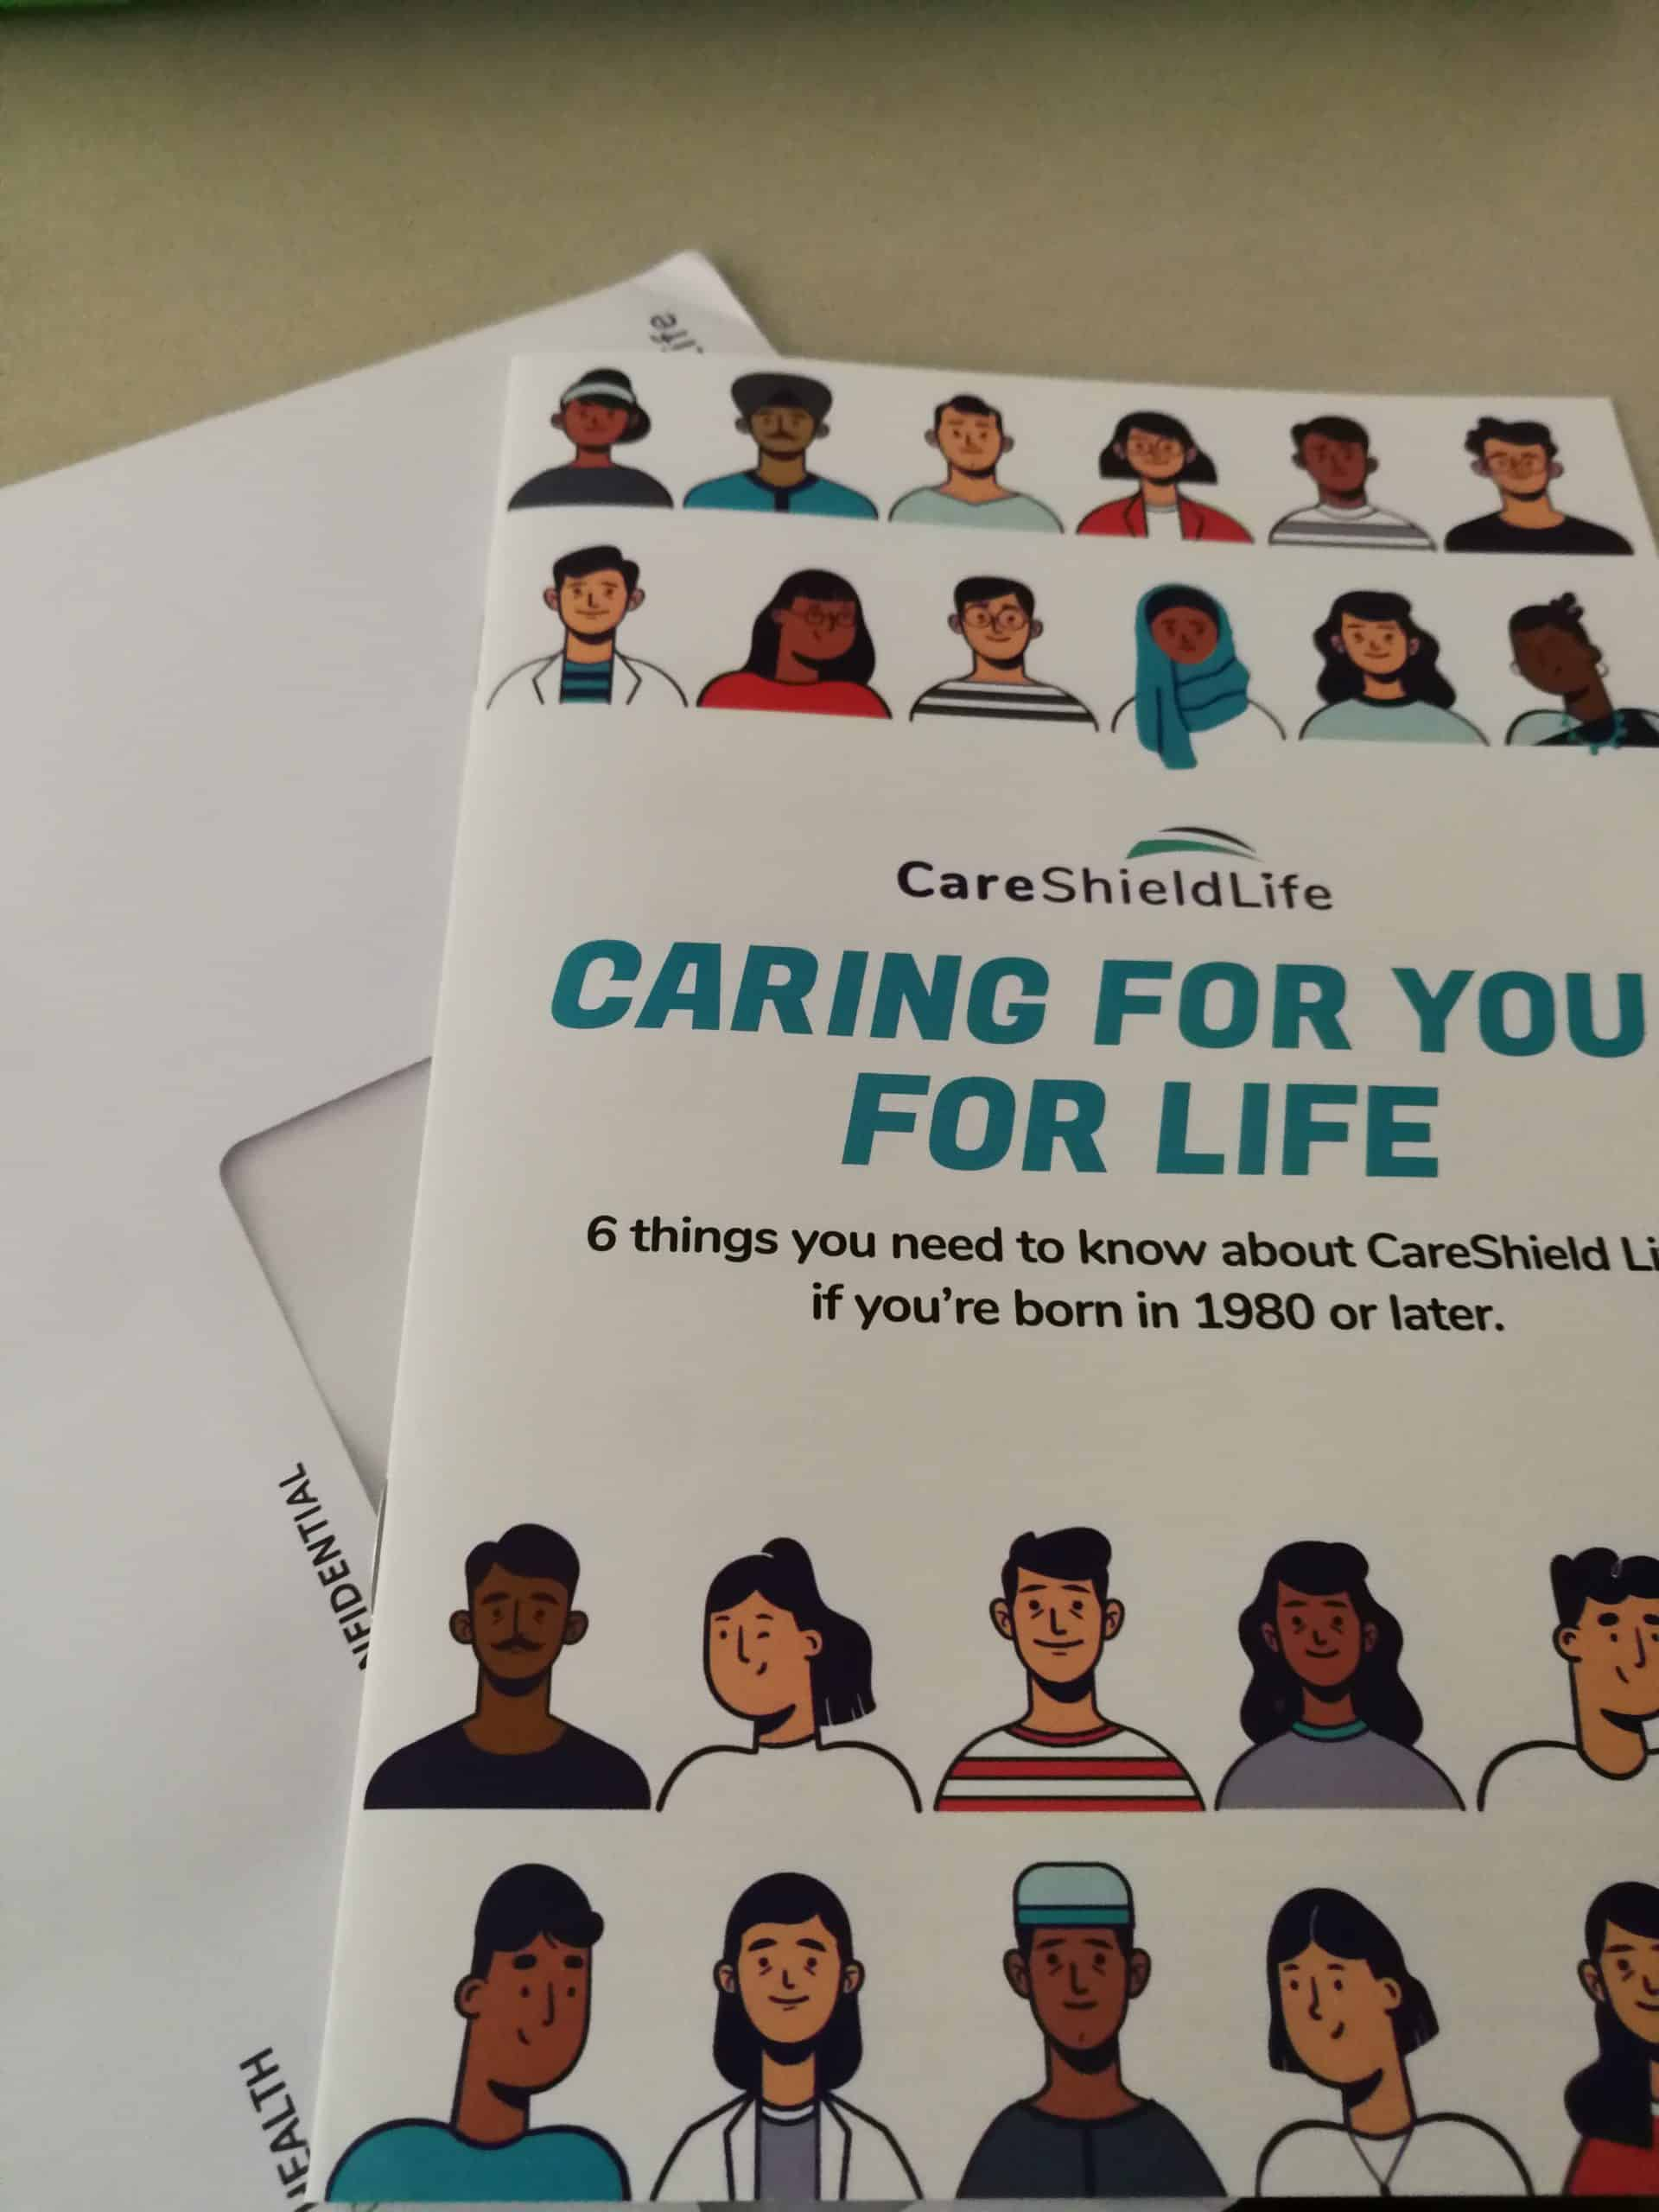 Why you shouldn't pay $200 for your Careshield Life